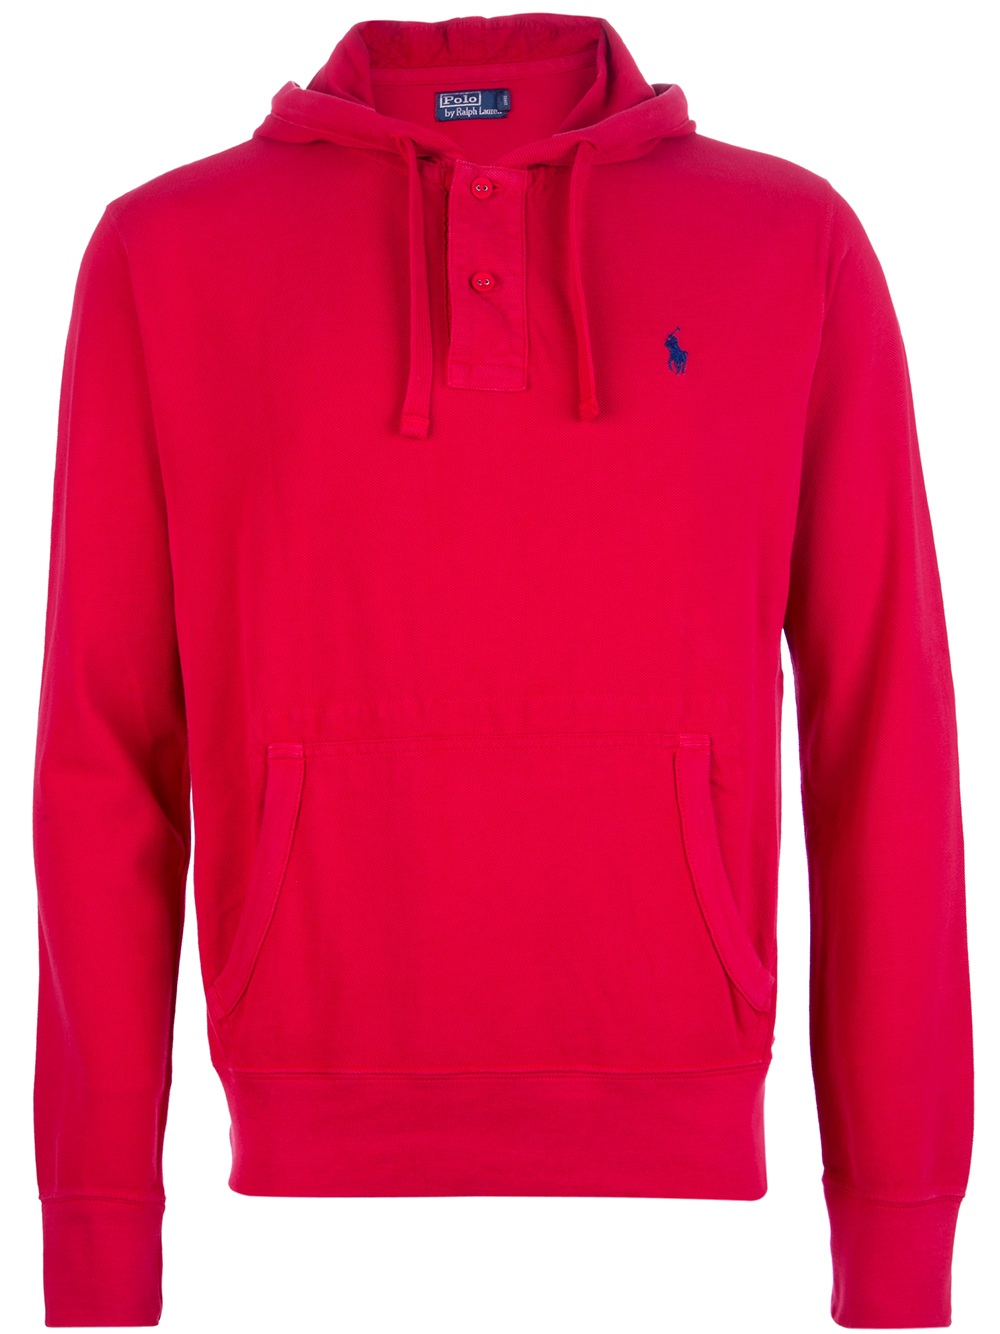 polo ralph lauren drawstring hoodie in red for men lyst. Black Bedroom Furniture Sets. Home Design Ideas